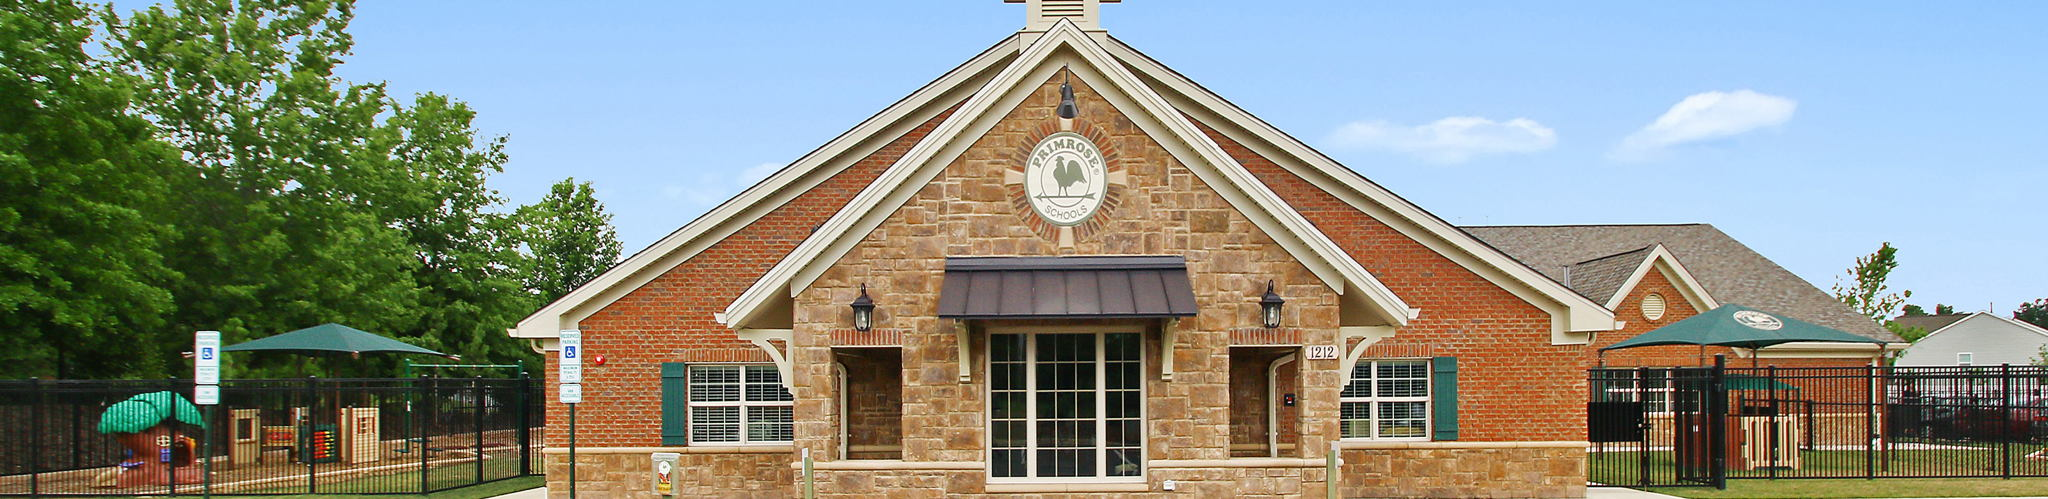 Exterior of a Primrose School of Fort Mill